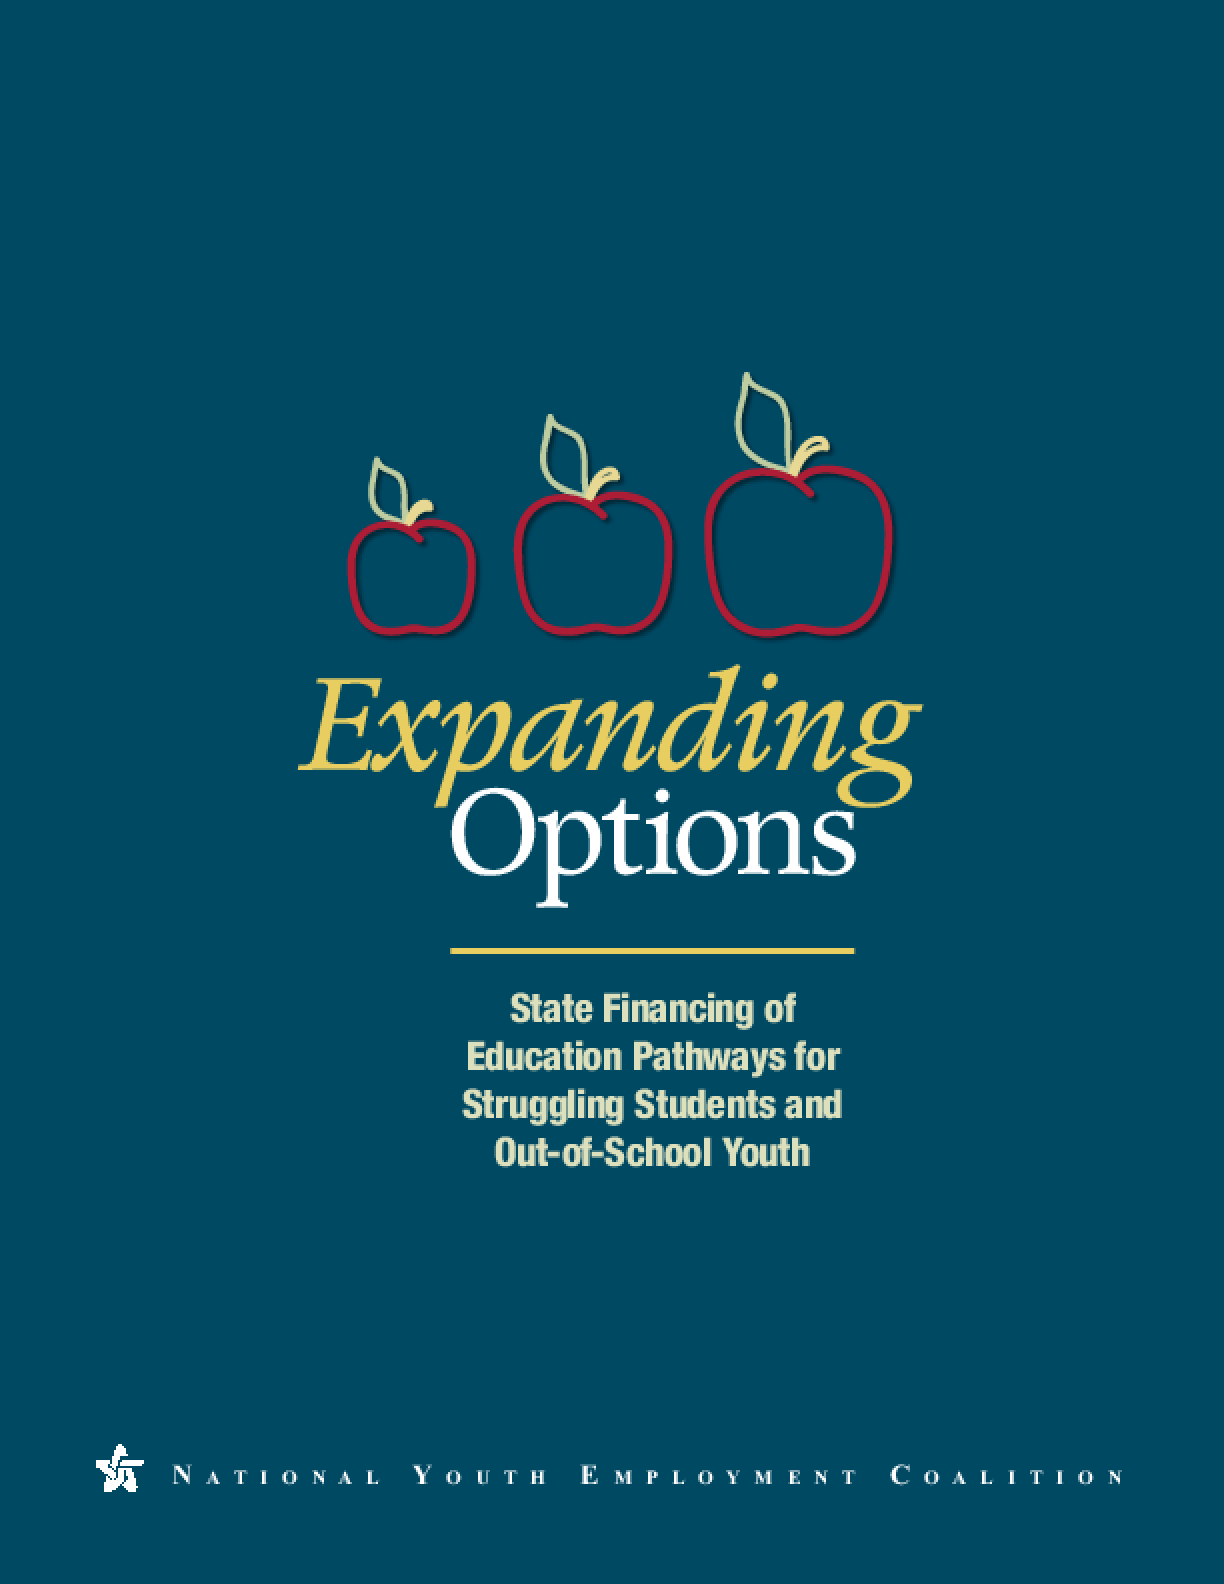 Expanding Options: State Financing of Education Pathways for Struggling Students and Out-of-School Youth